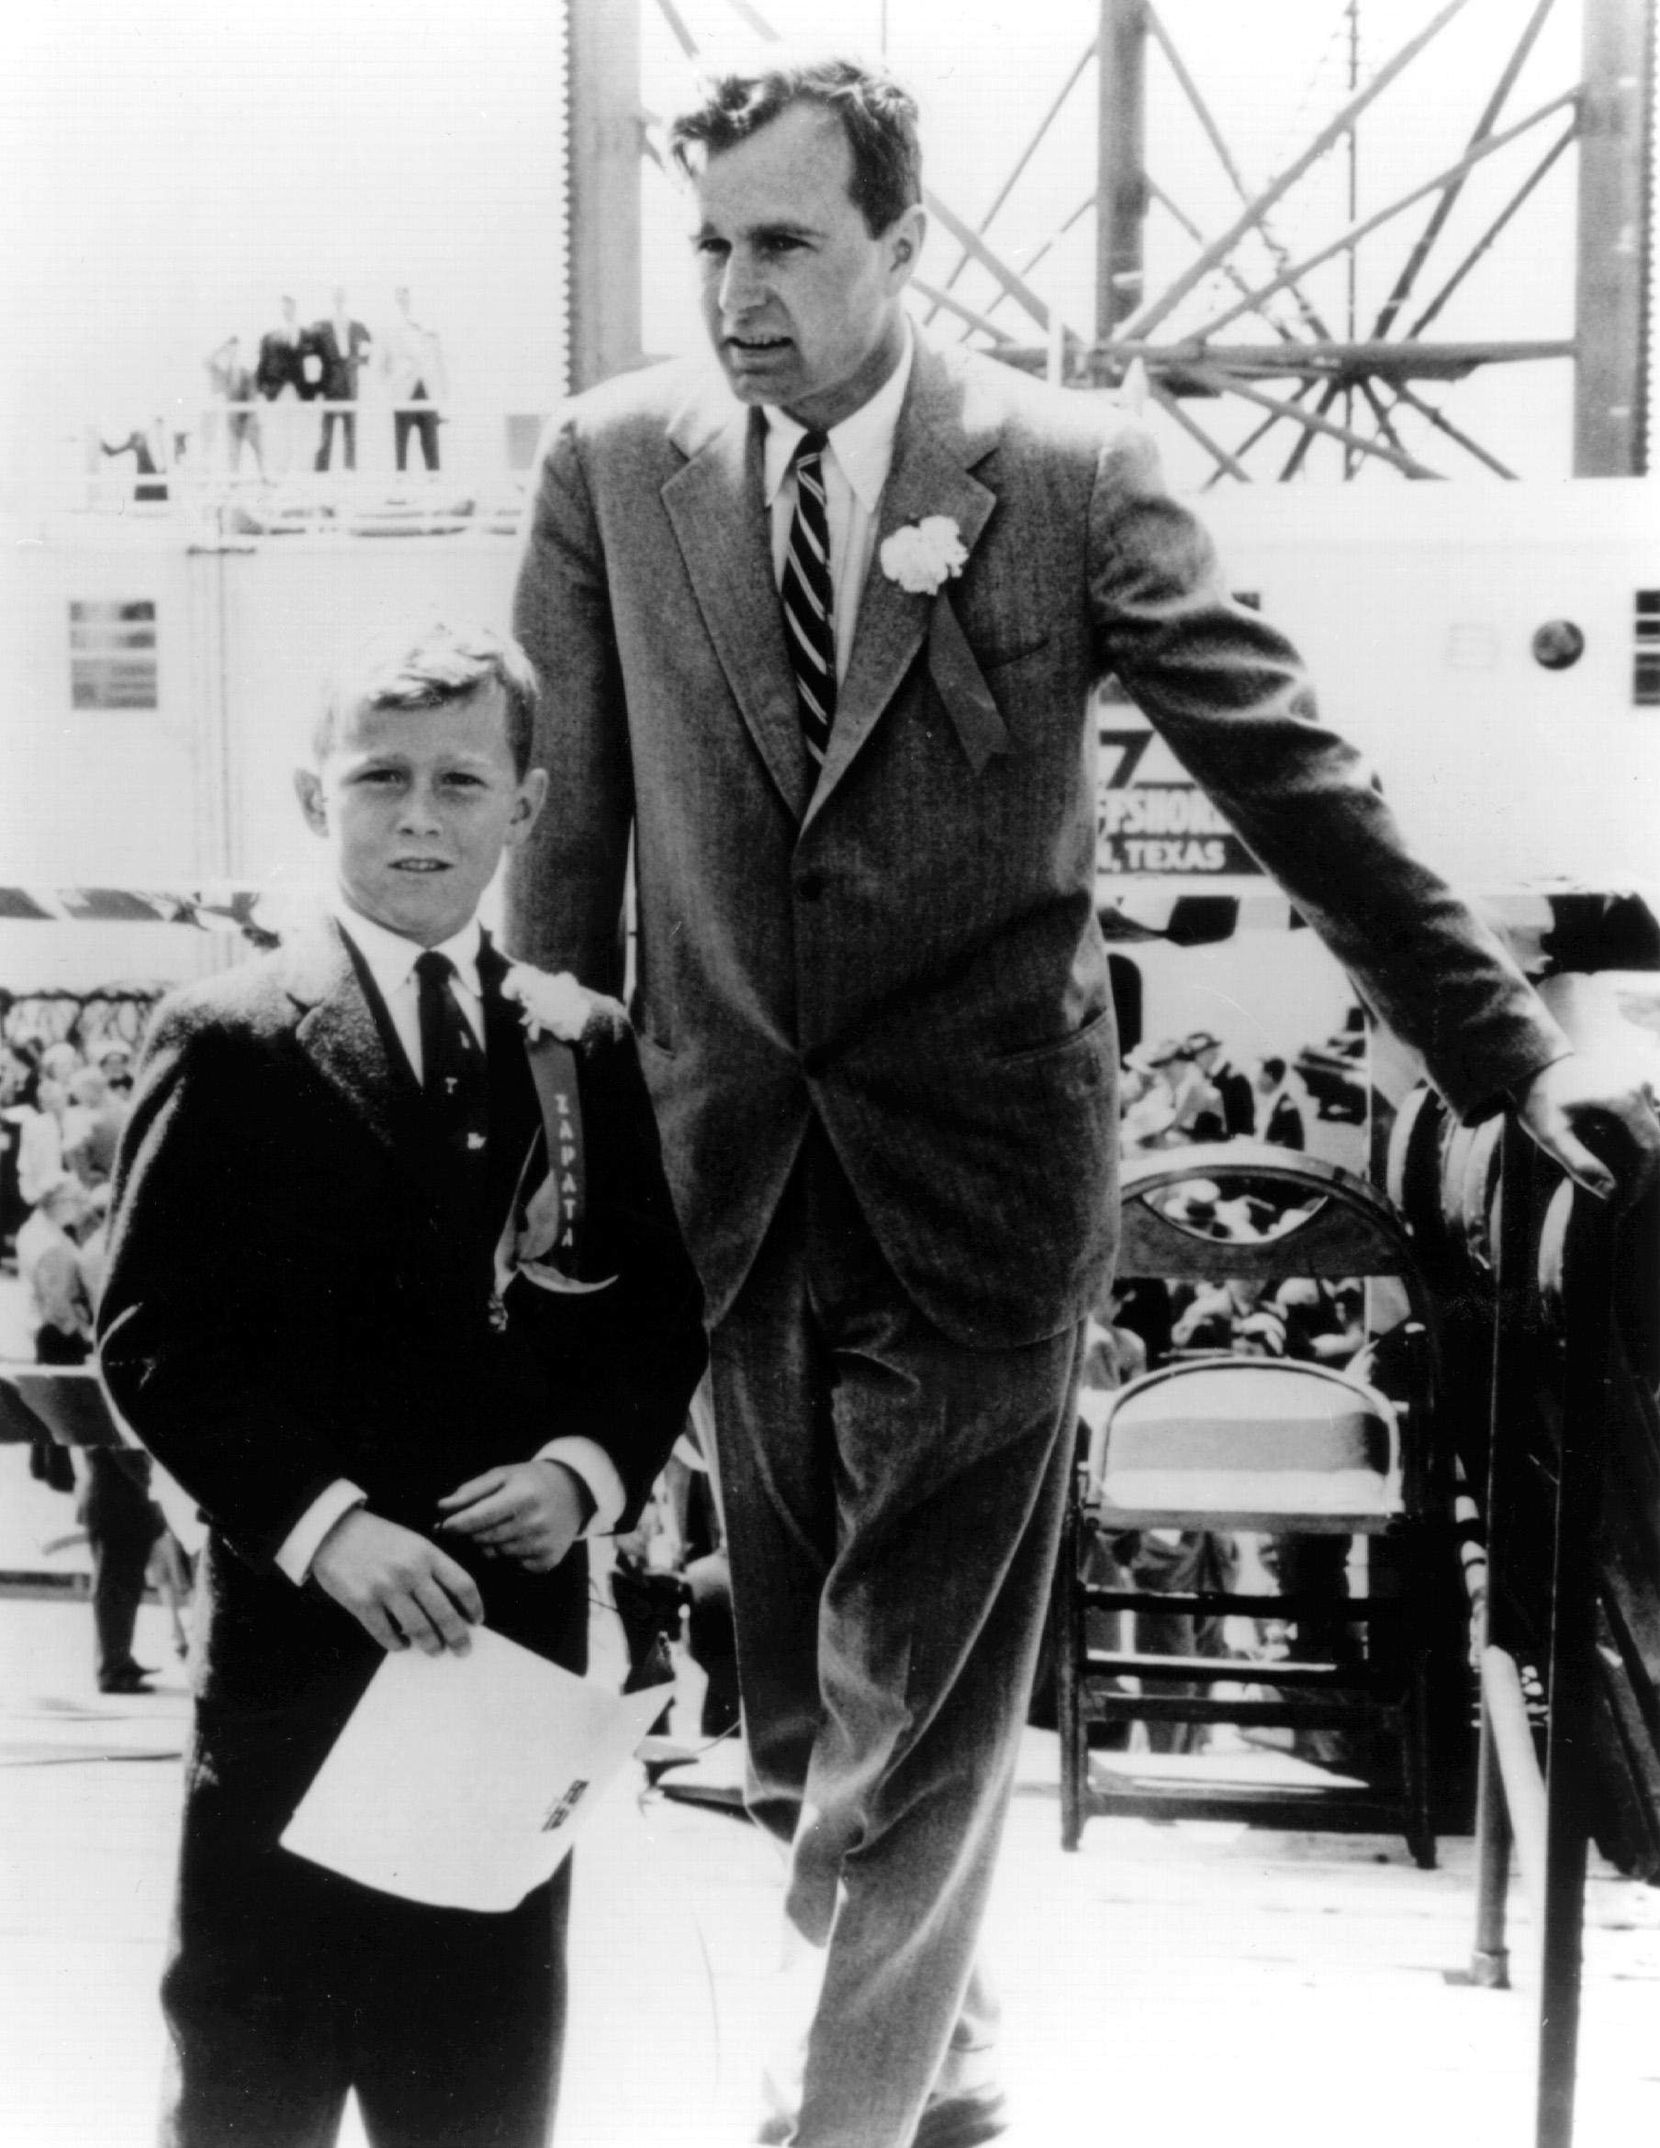 1956: George H.W. Bush and son George W. Bush at the commissioning ceremonies for the Scorpion off-shore drilling platform. Bush made a fortune drilling oil before entering politics.